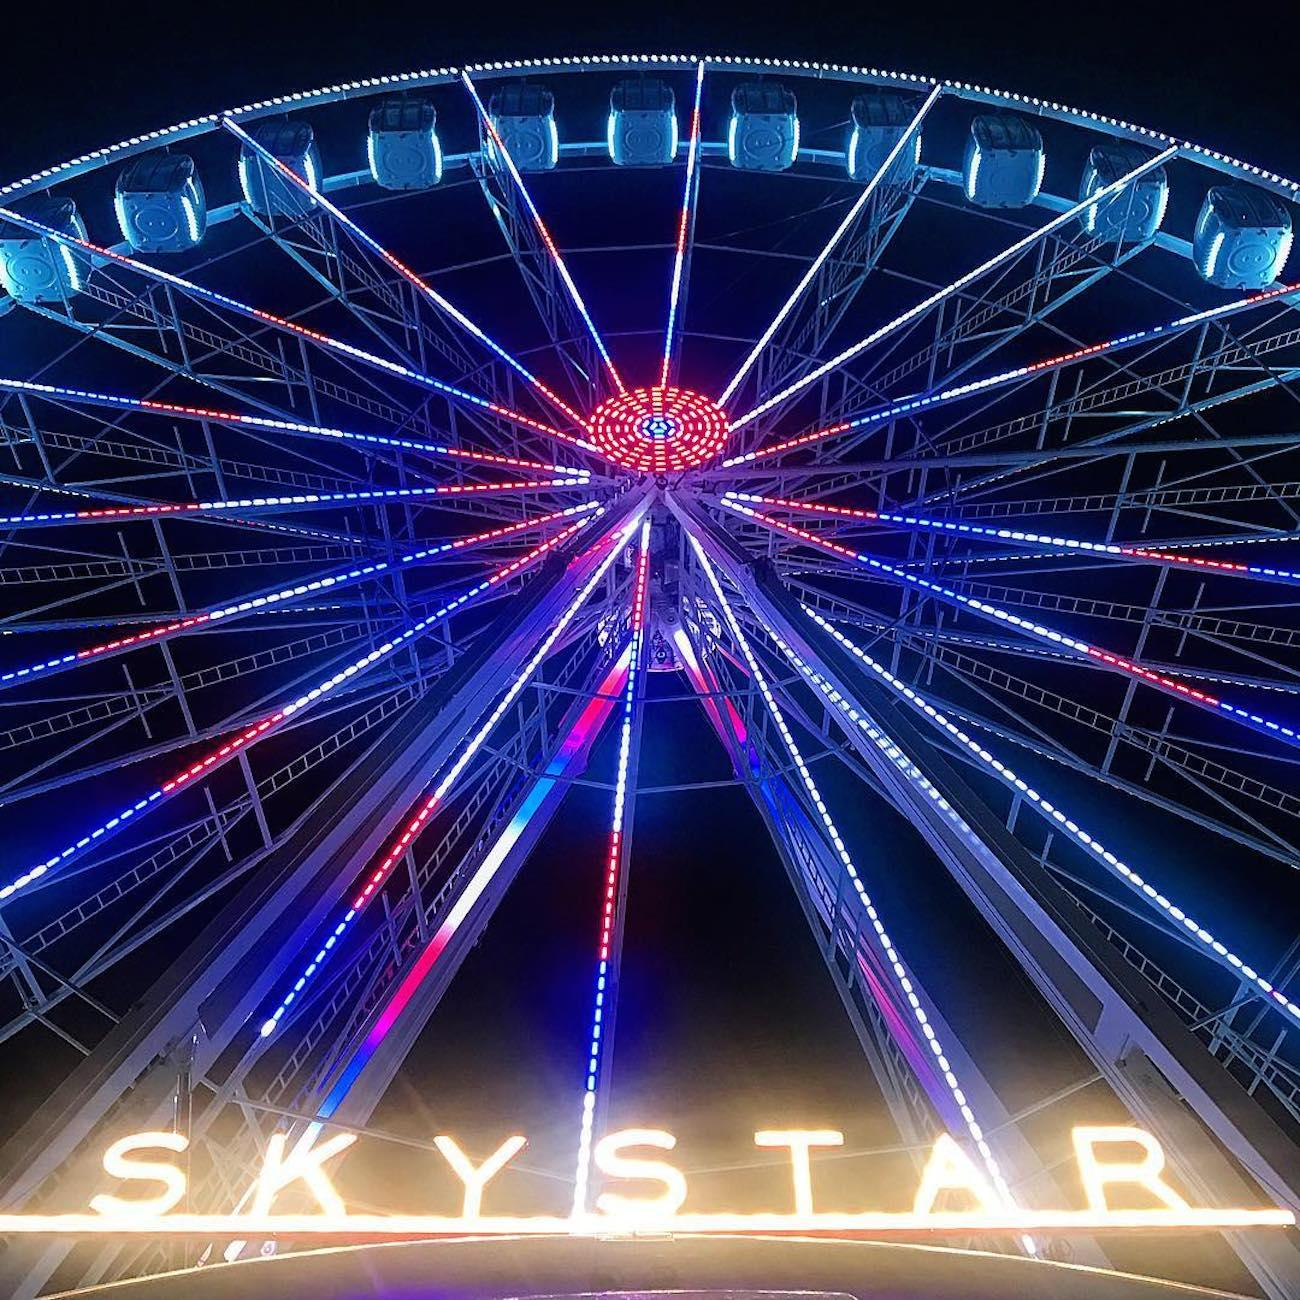 The SkyStar is the largest traveling observation wheel in the country. Guests are carried in gondolas up almost 15 stories high while overlooking the Ohio River. The 36 carriers are climate-controlled and can hold up to six people. The magnificent structure will only call The Banks its home through December 2nd before it's packed up and rolled to a new city. SkyStar runs daily, and tickets are $12.50. ADDRESS: 55 East Freedom Way (45202) / Image courtesy of Instagram user @lt105305 // Published 9.12.18<br>